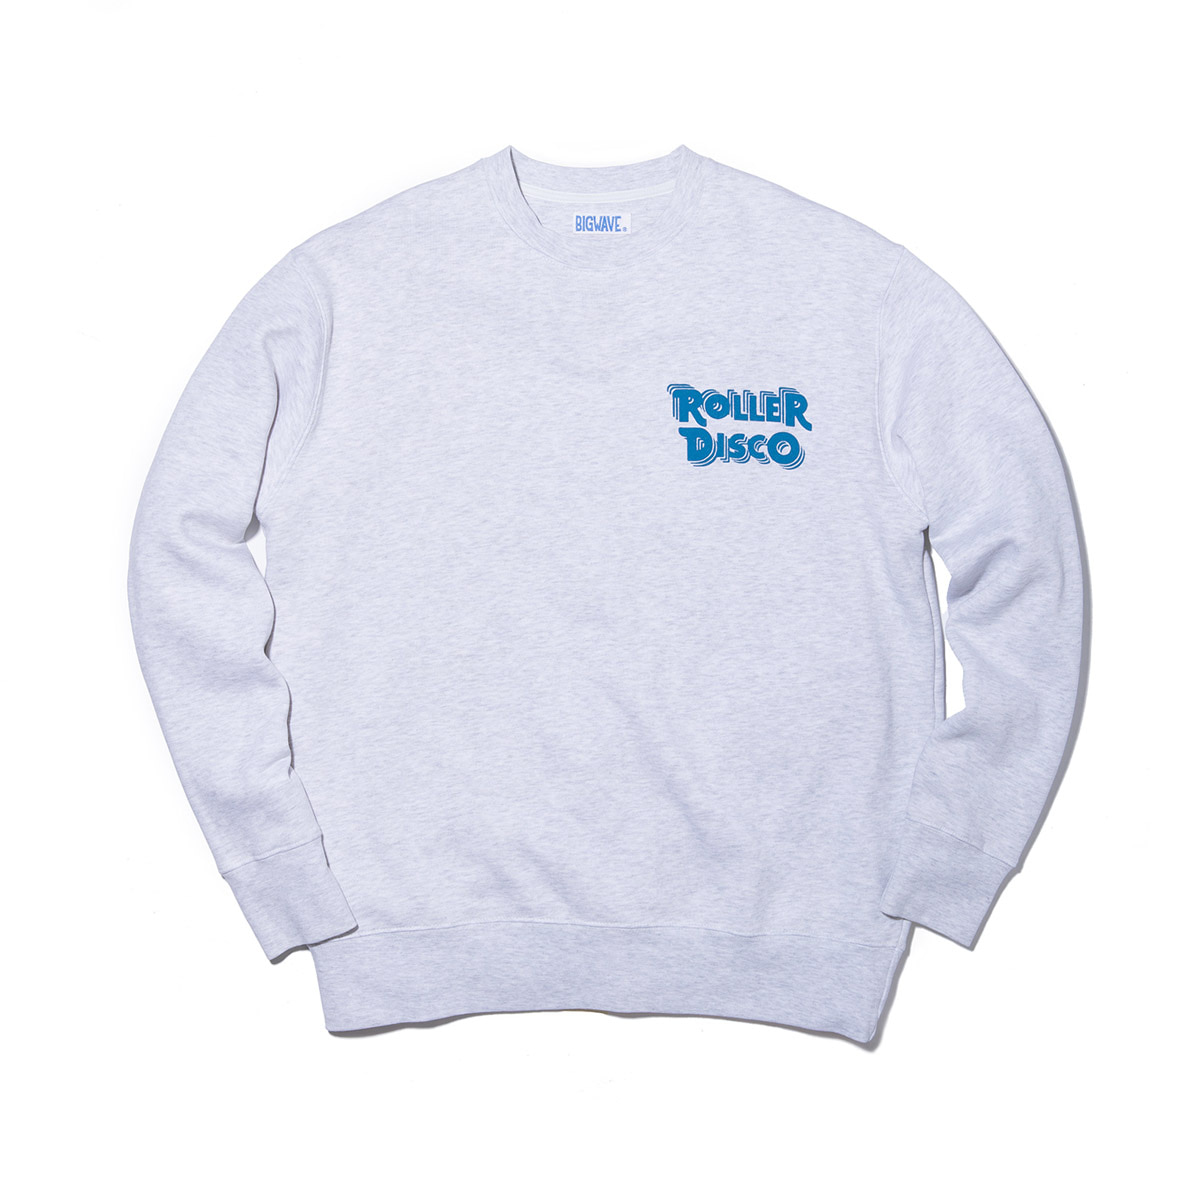 [BIG WAVE] ROLLER DISCO SWEAT 'ASH'